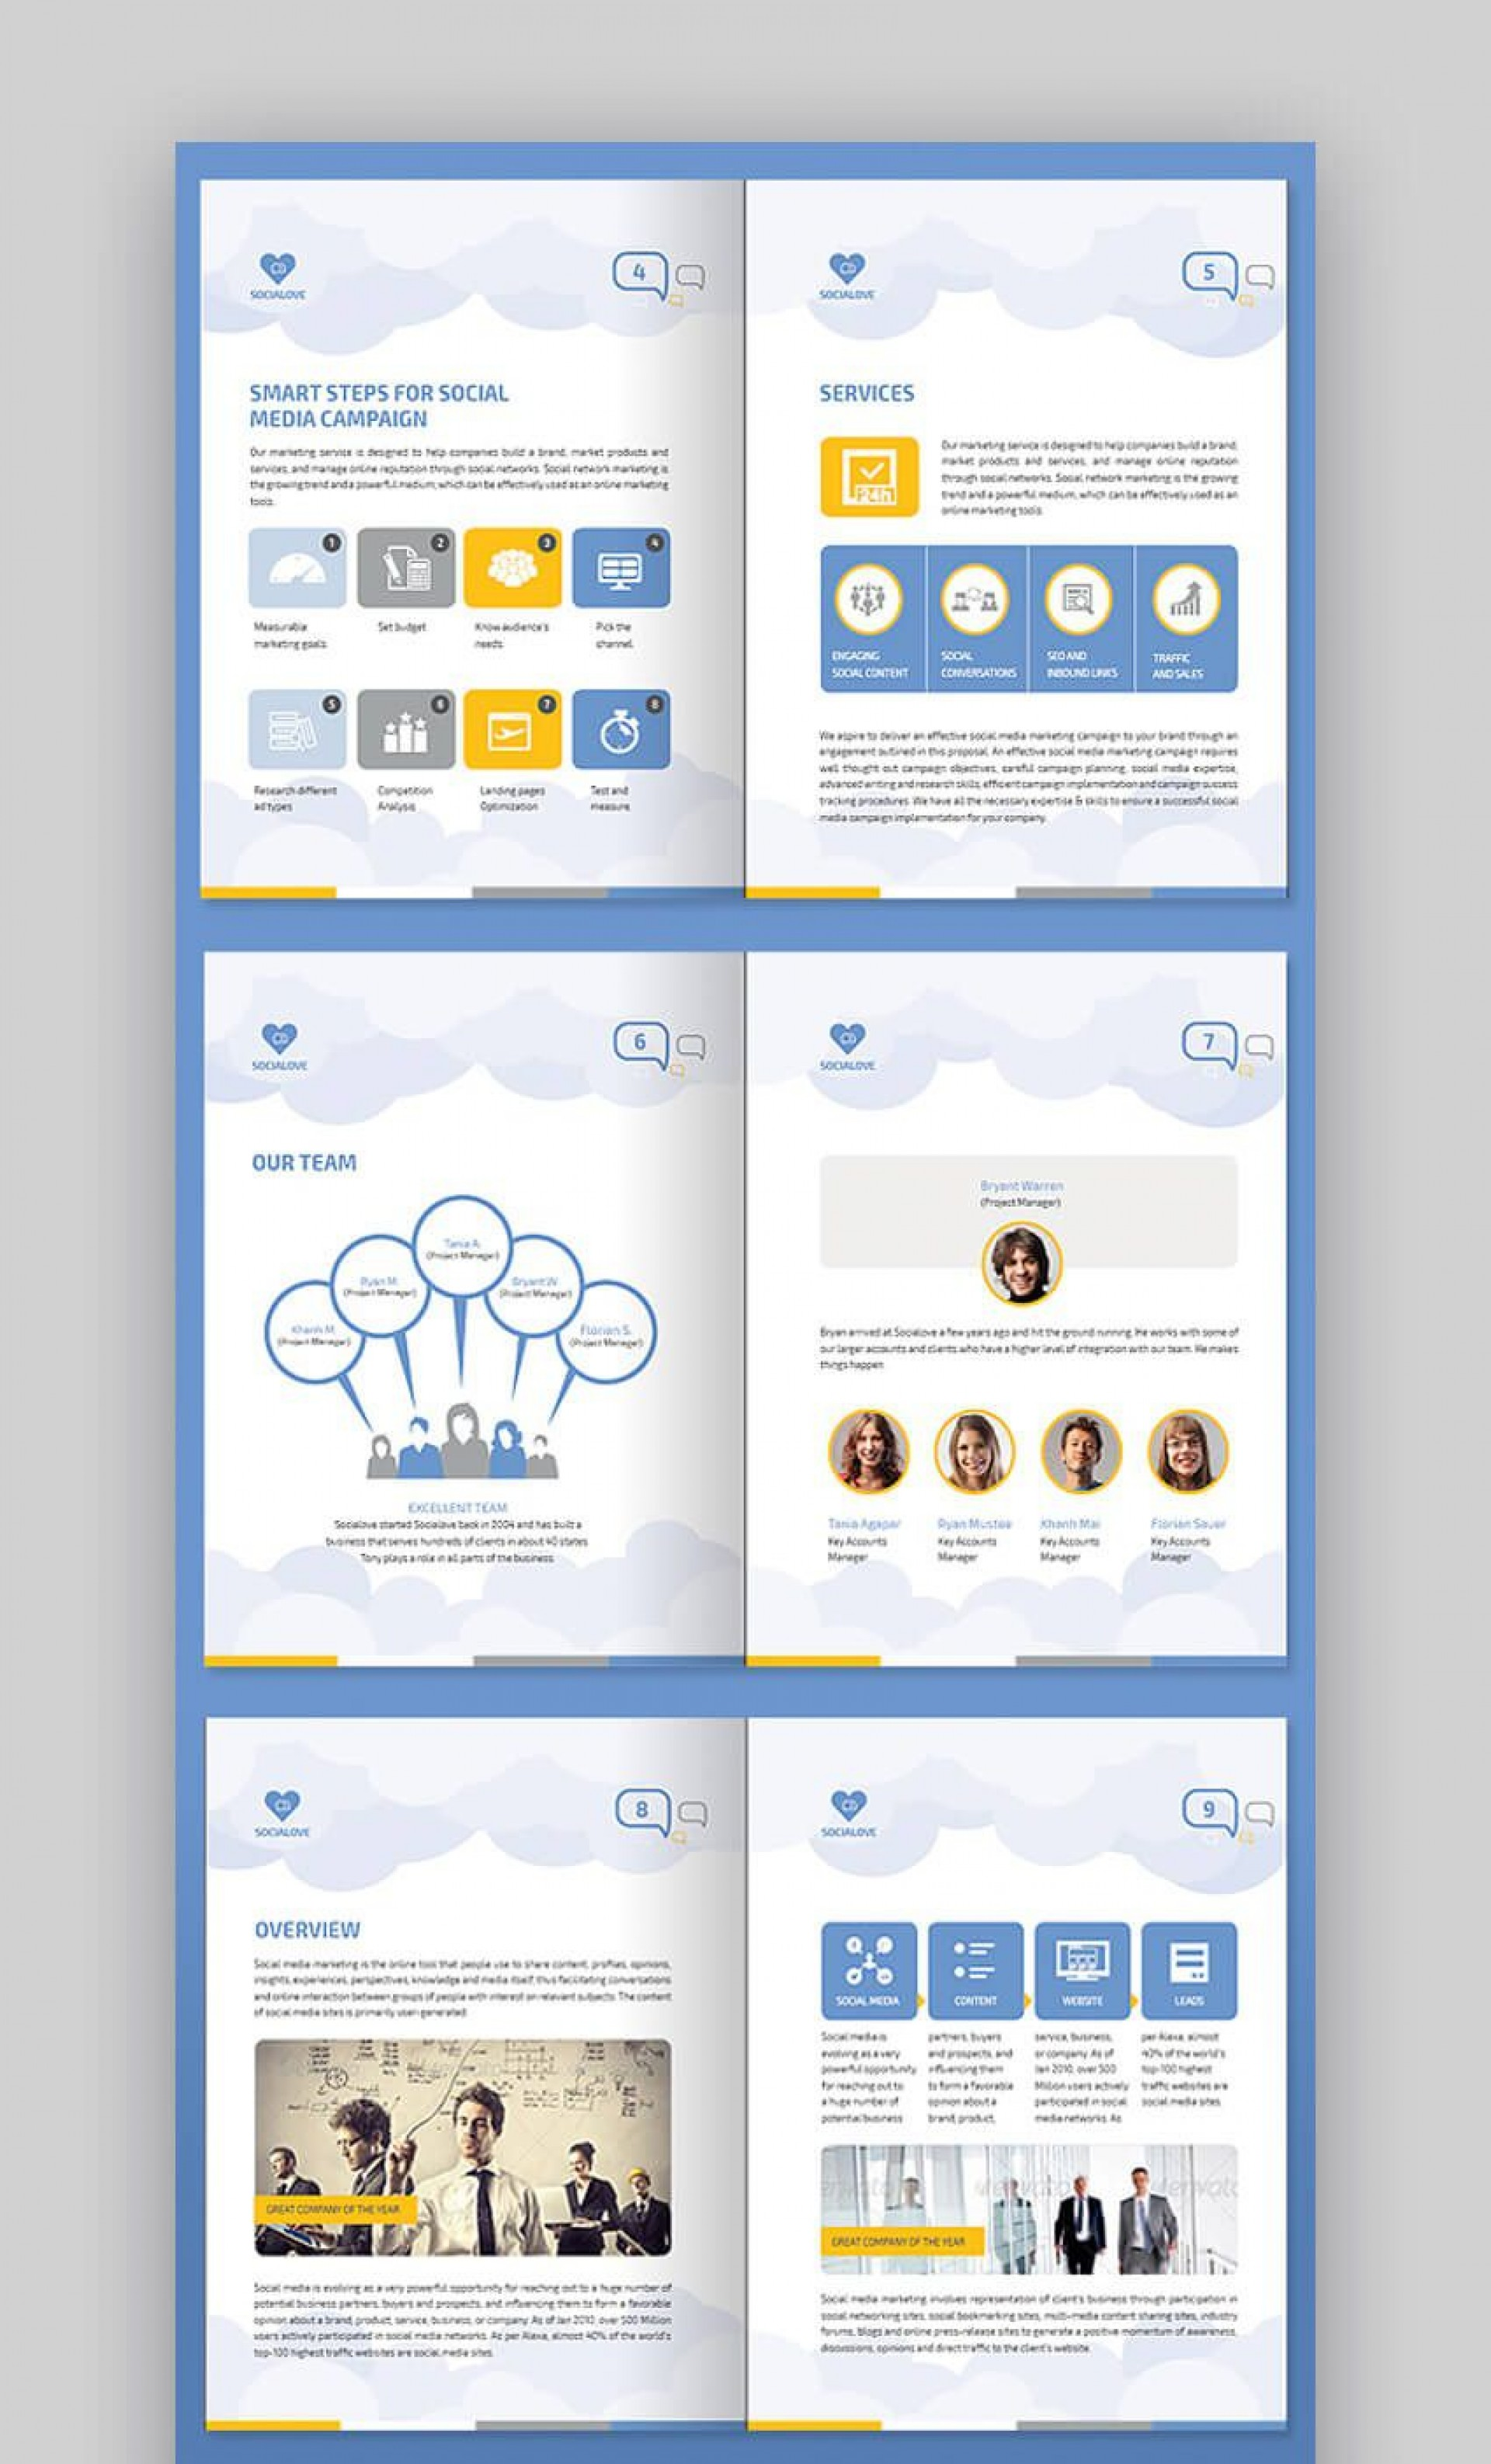 009 Awesome Social Media Proposal Template High Def  Ppt Marketing Word 20191920